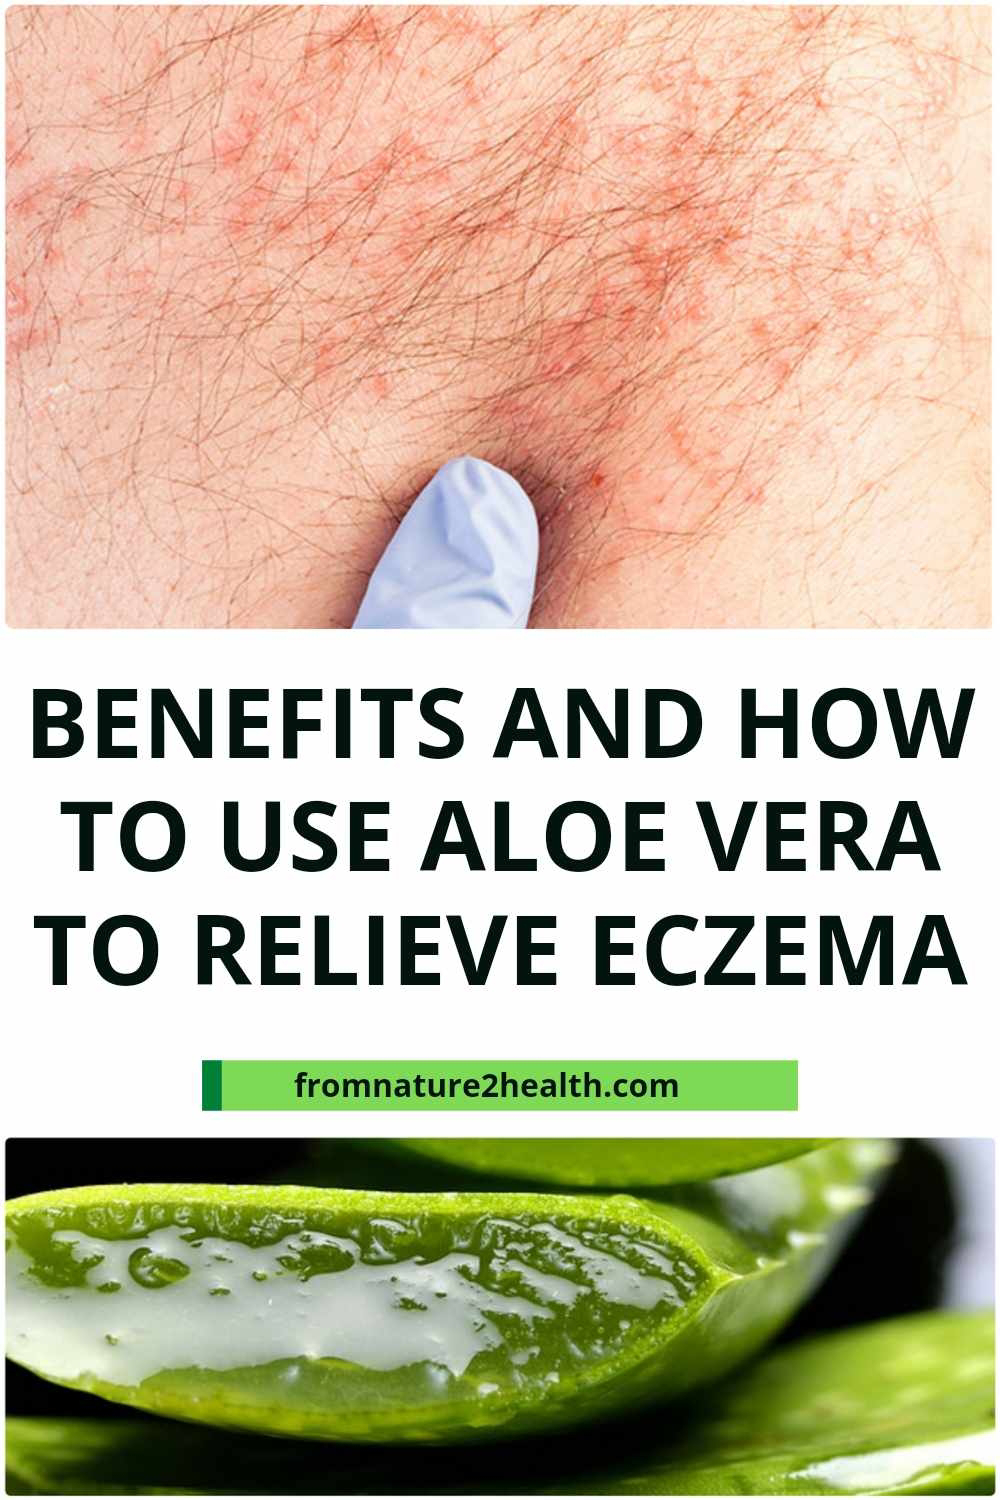 Benefits and How to Use Aloe Vera to Relieve Eczema